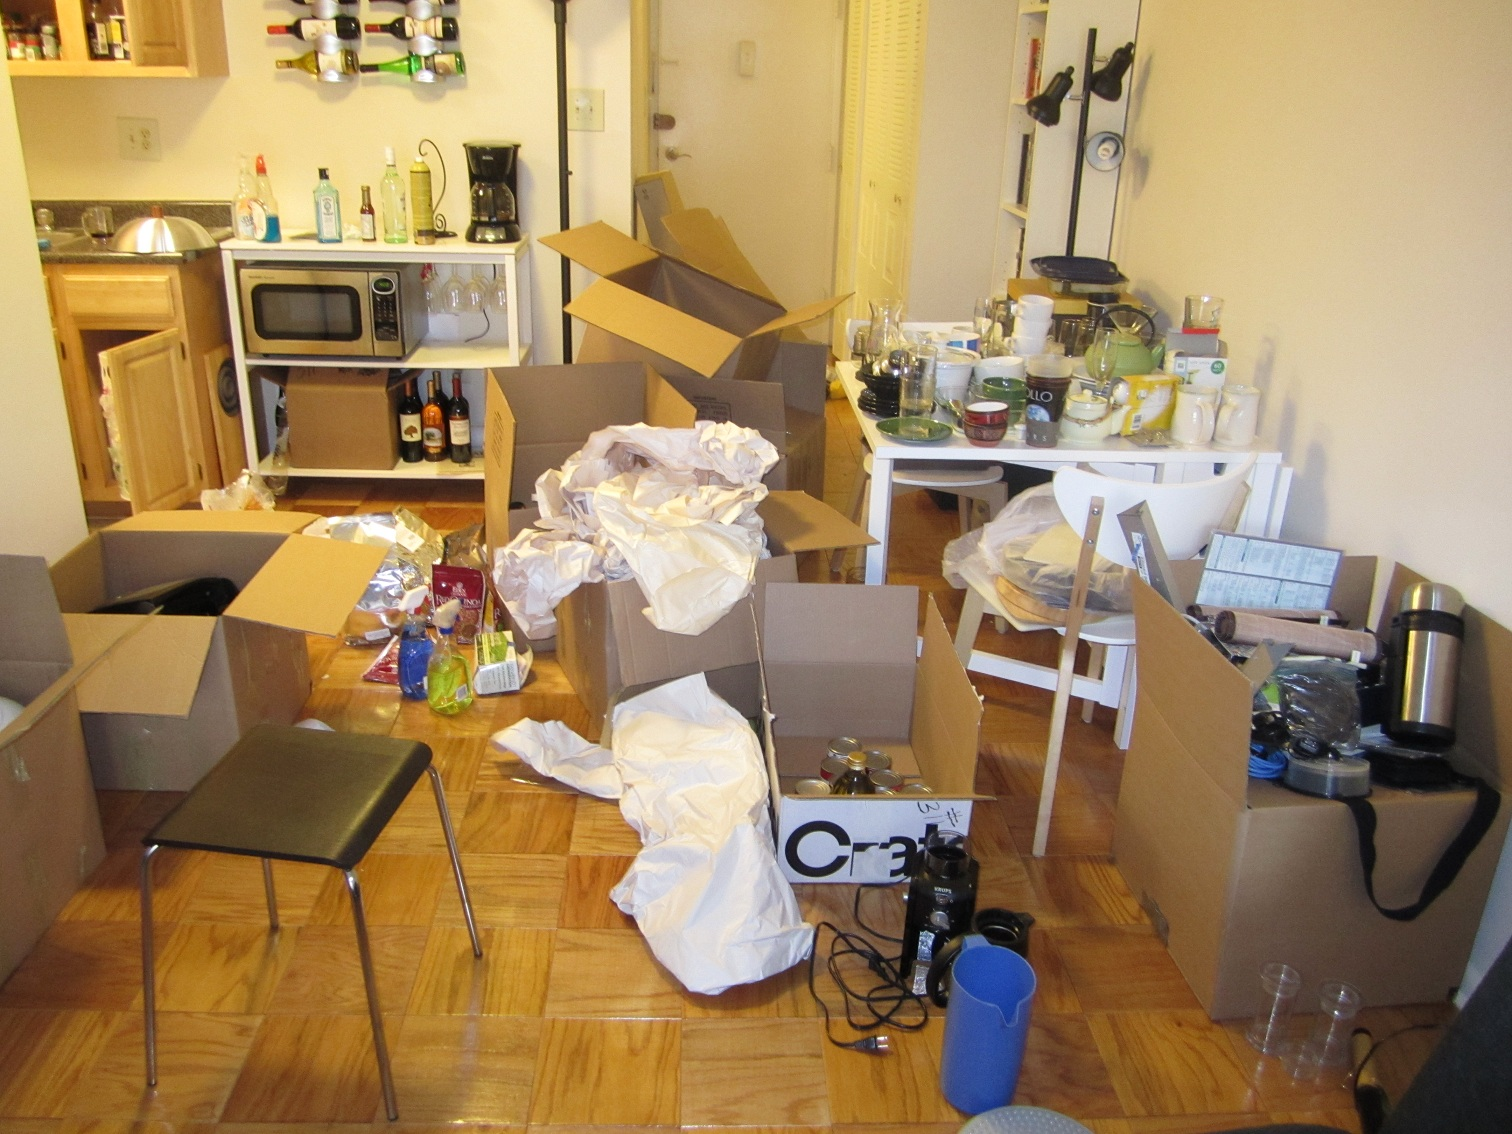 Wondering and wandering apartment update we got our Messy apartment